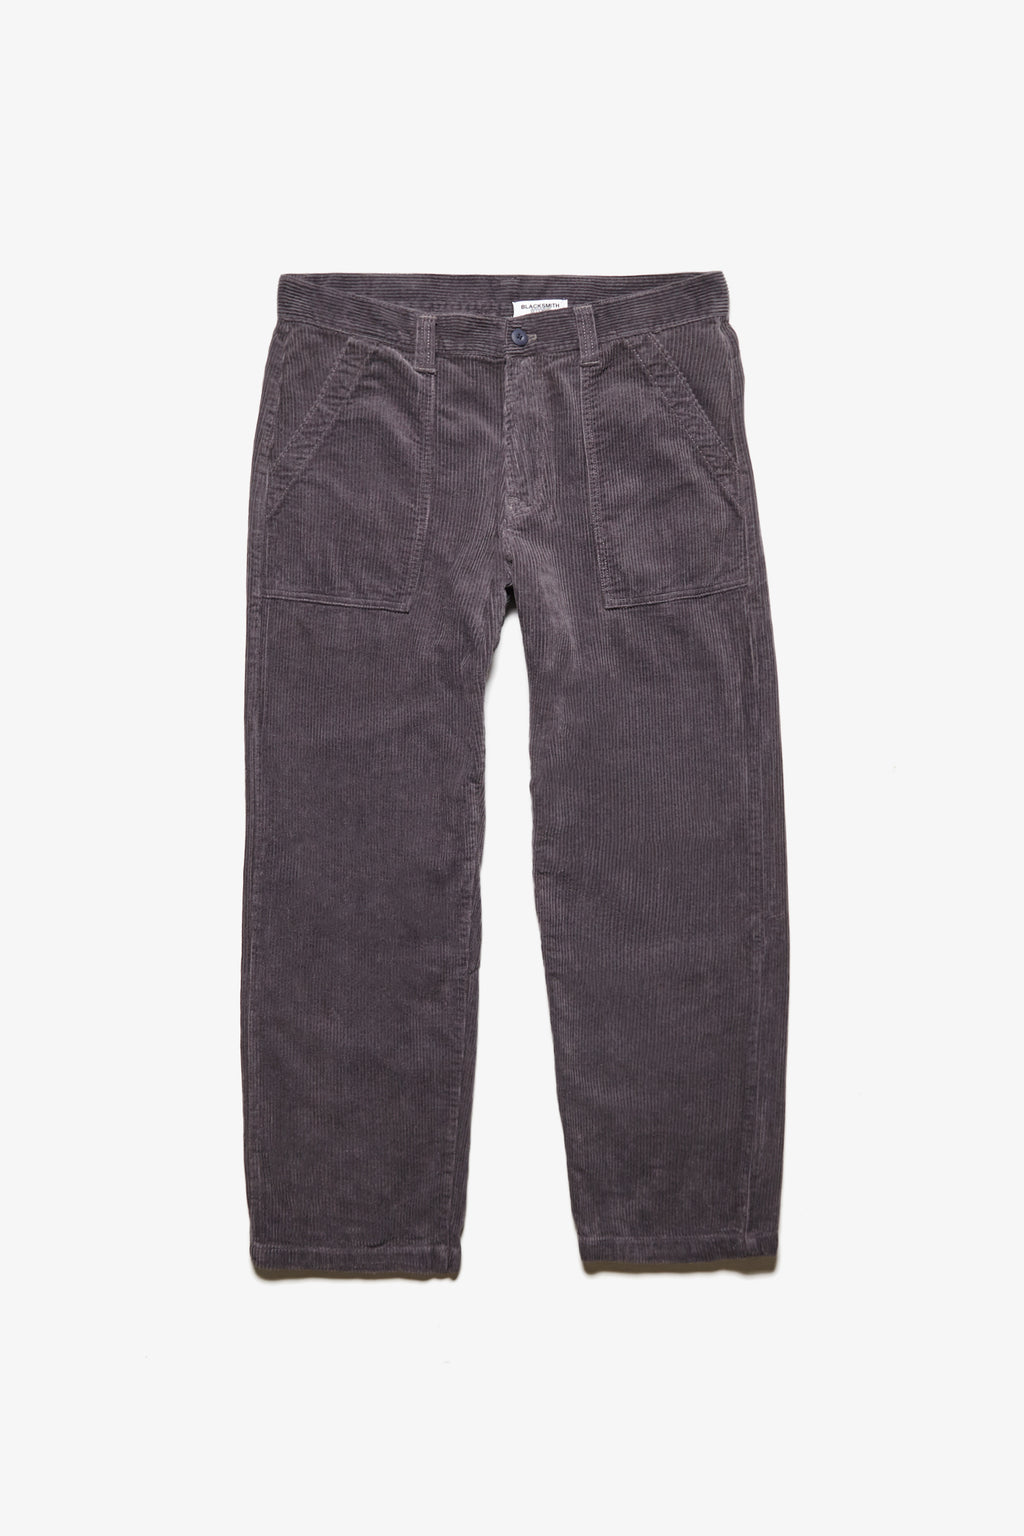 Blacksmith - Cord Fatigue Pants - Smoke